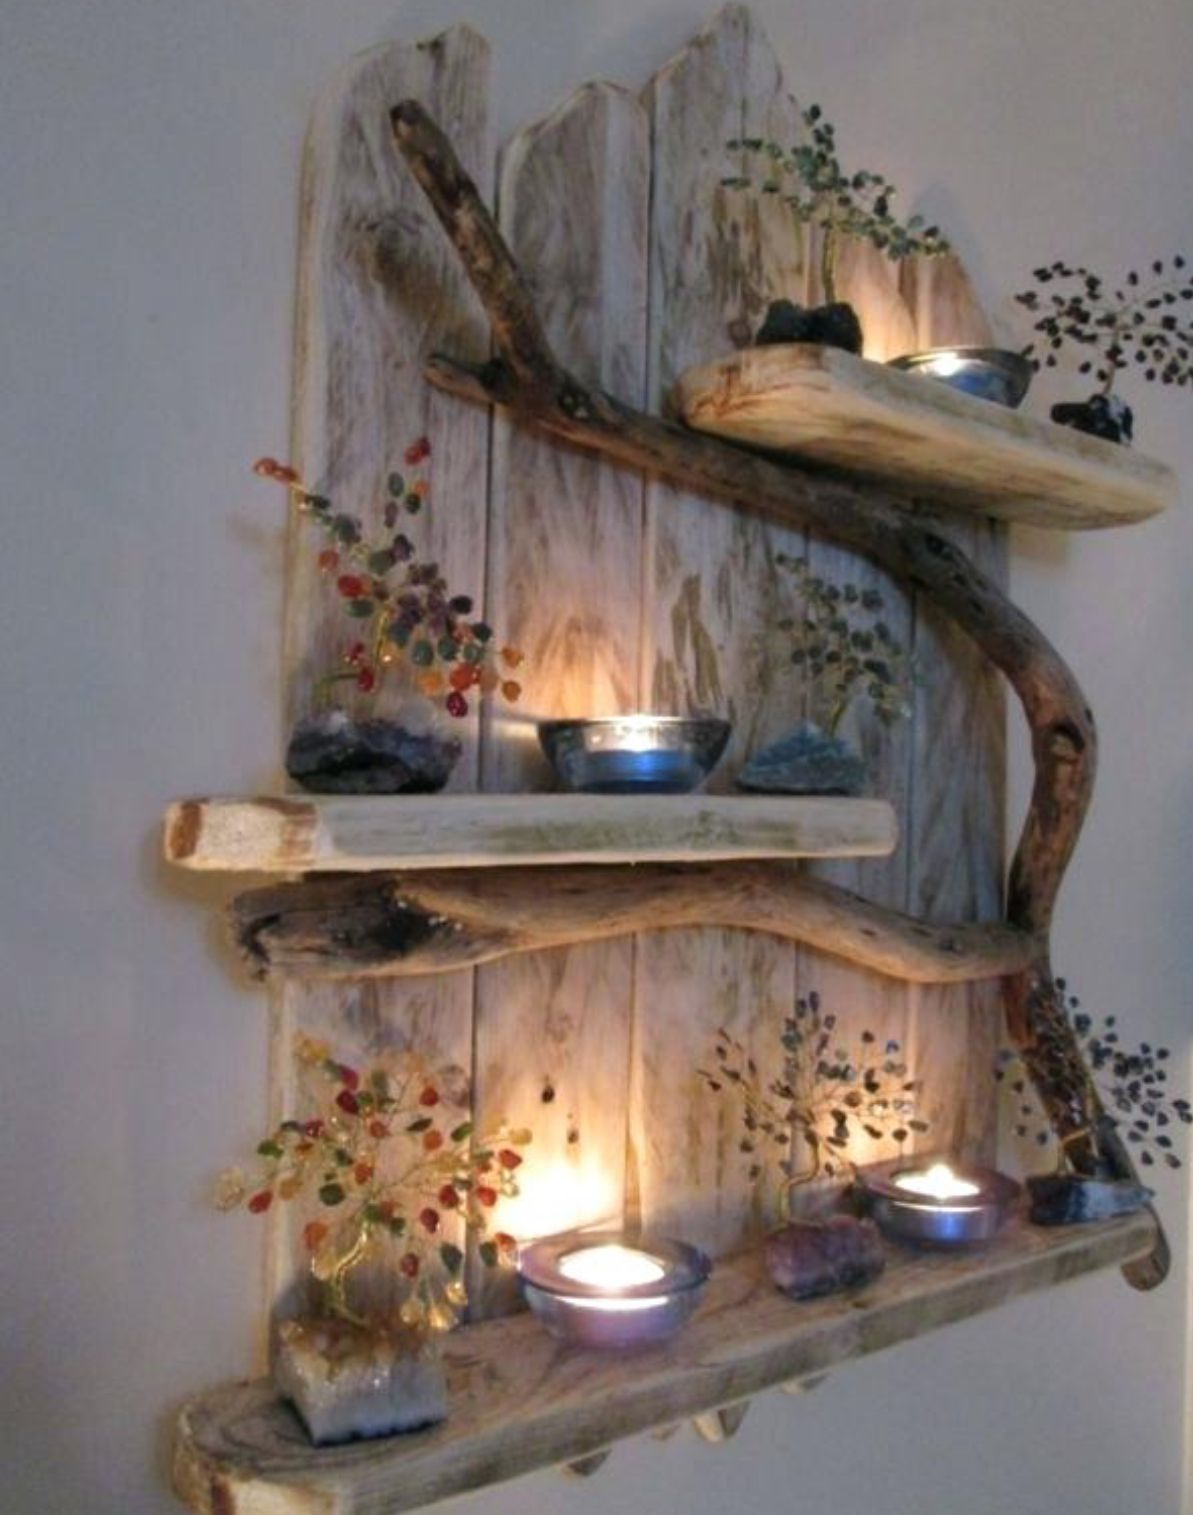 pallet and driftwood shelves; decorate with dried flowers, candles, etc. for a warm, homey glow #palletbedroomfurniture